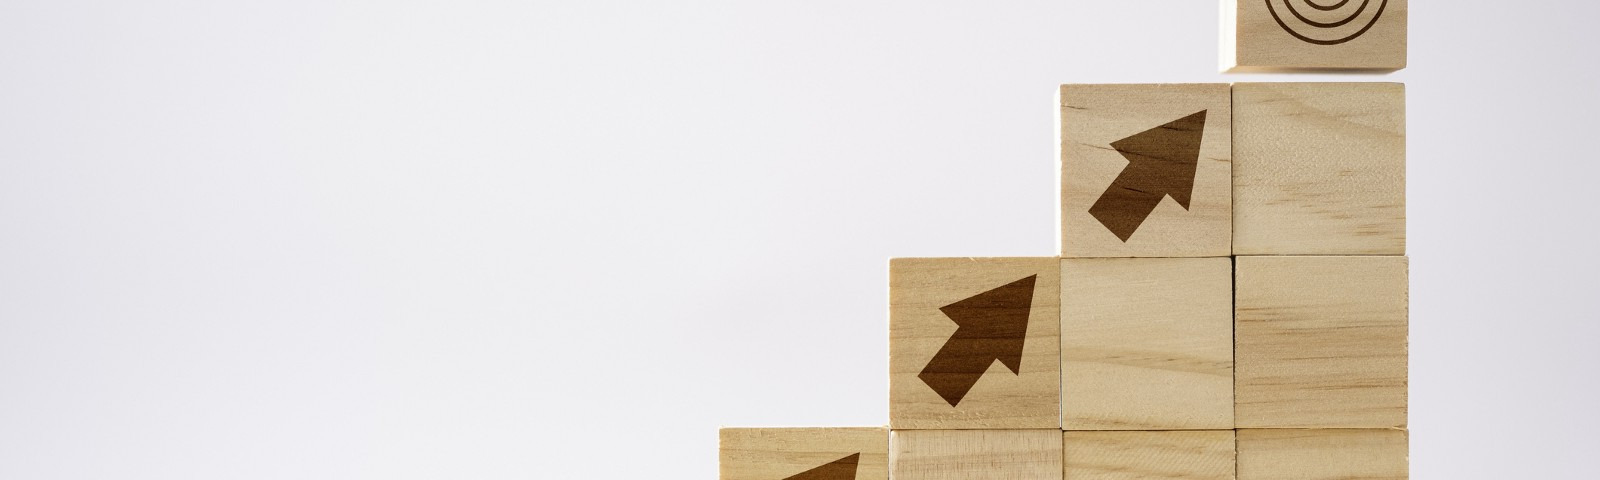 Set of wooden blocks showing arrow pointing to target